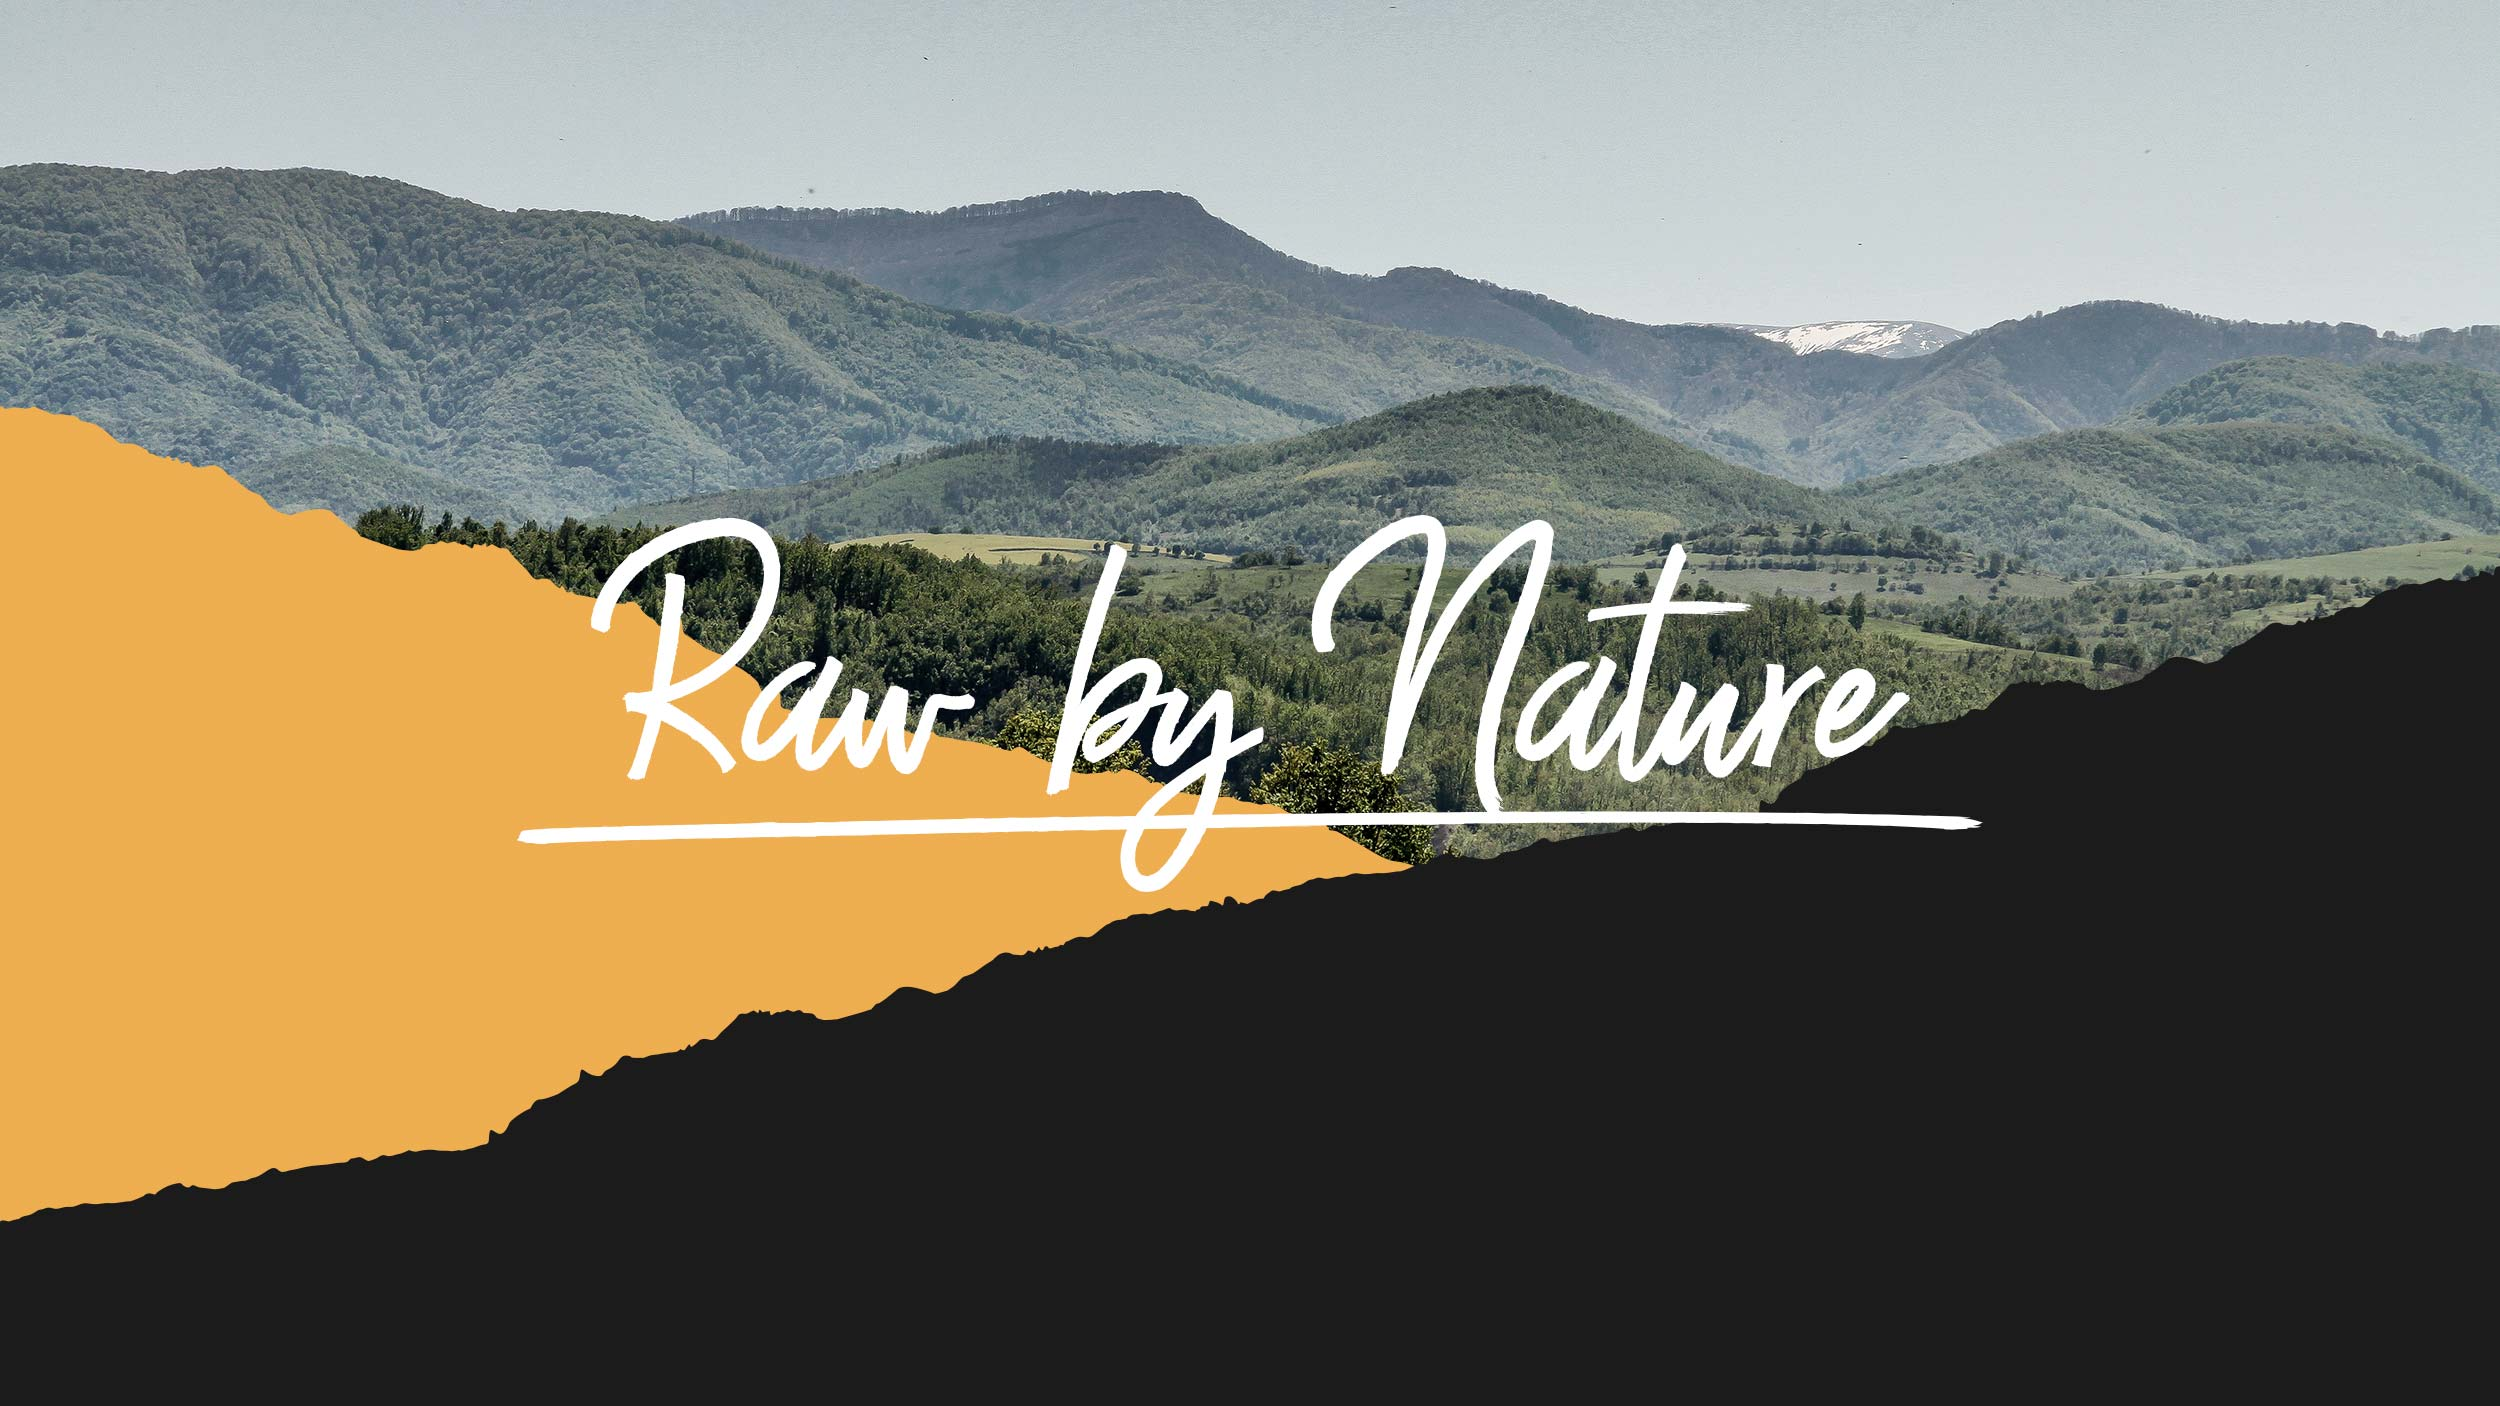 Raw by nature tagline